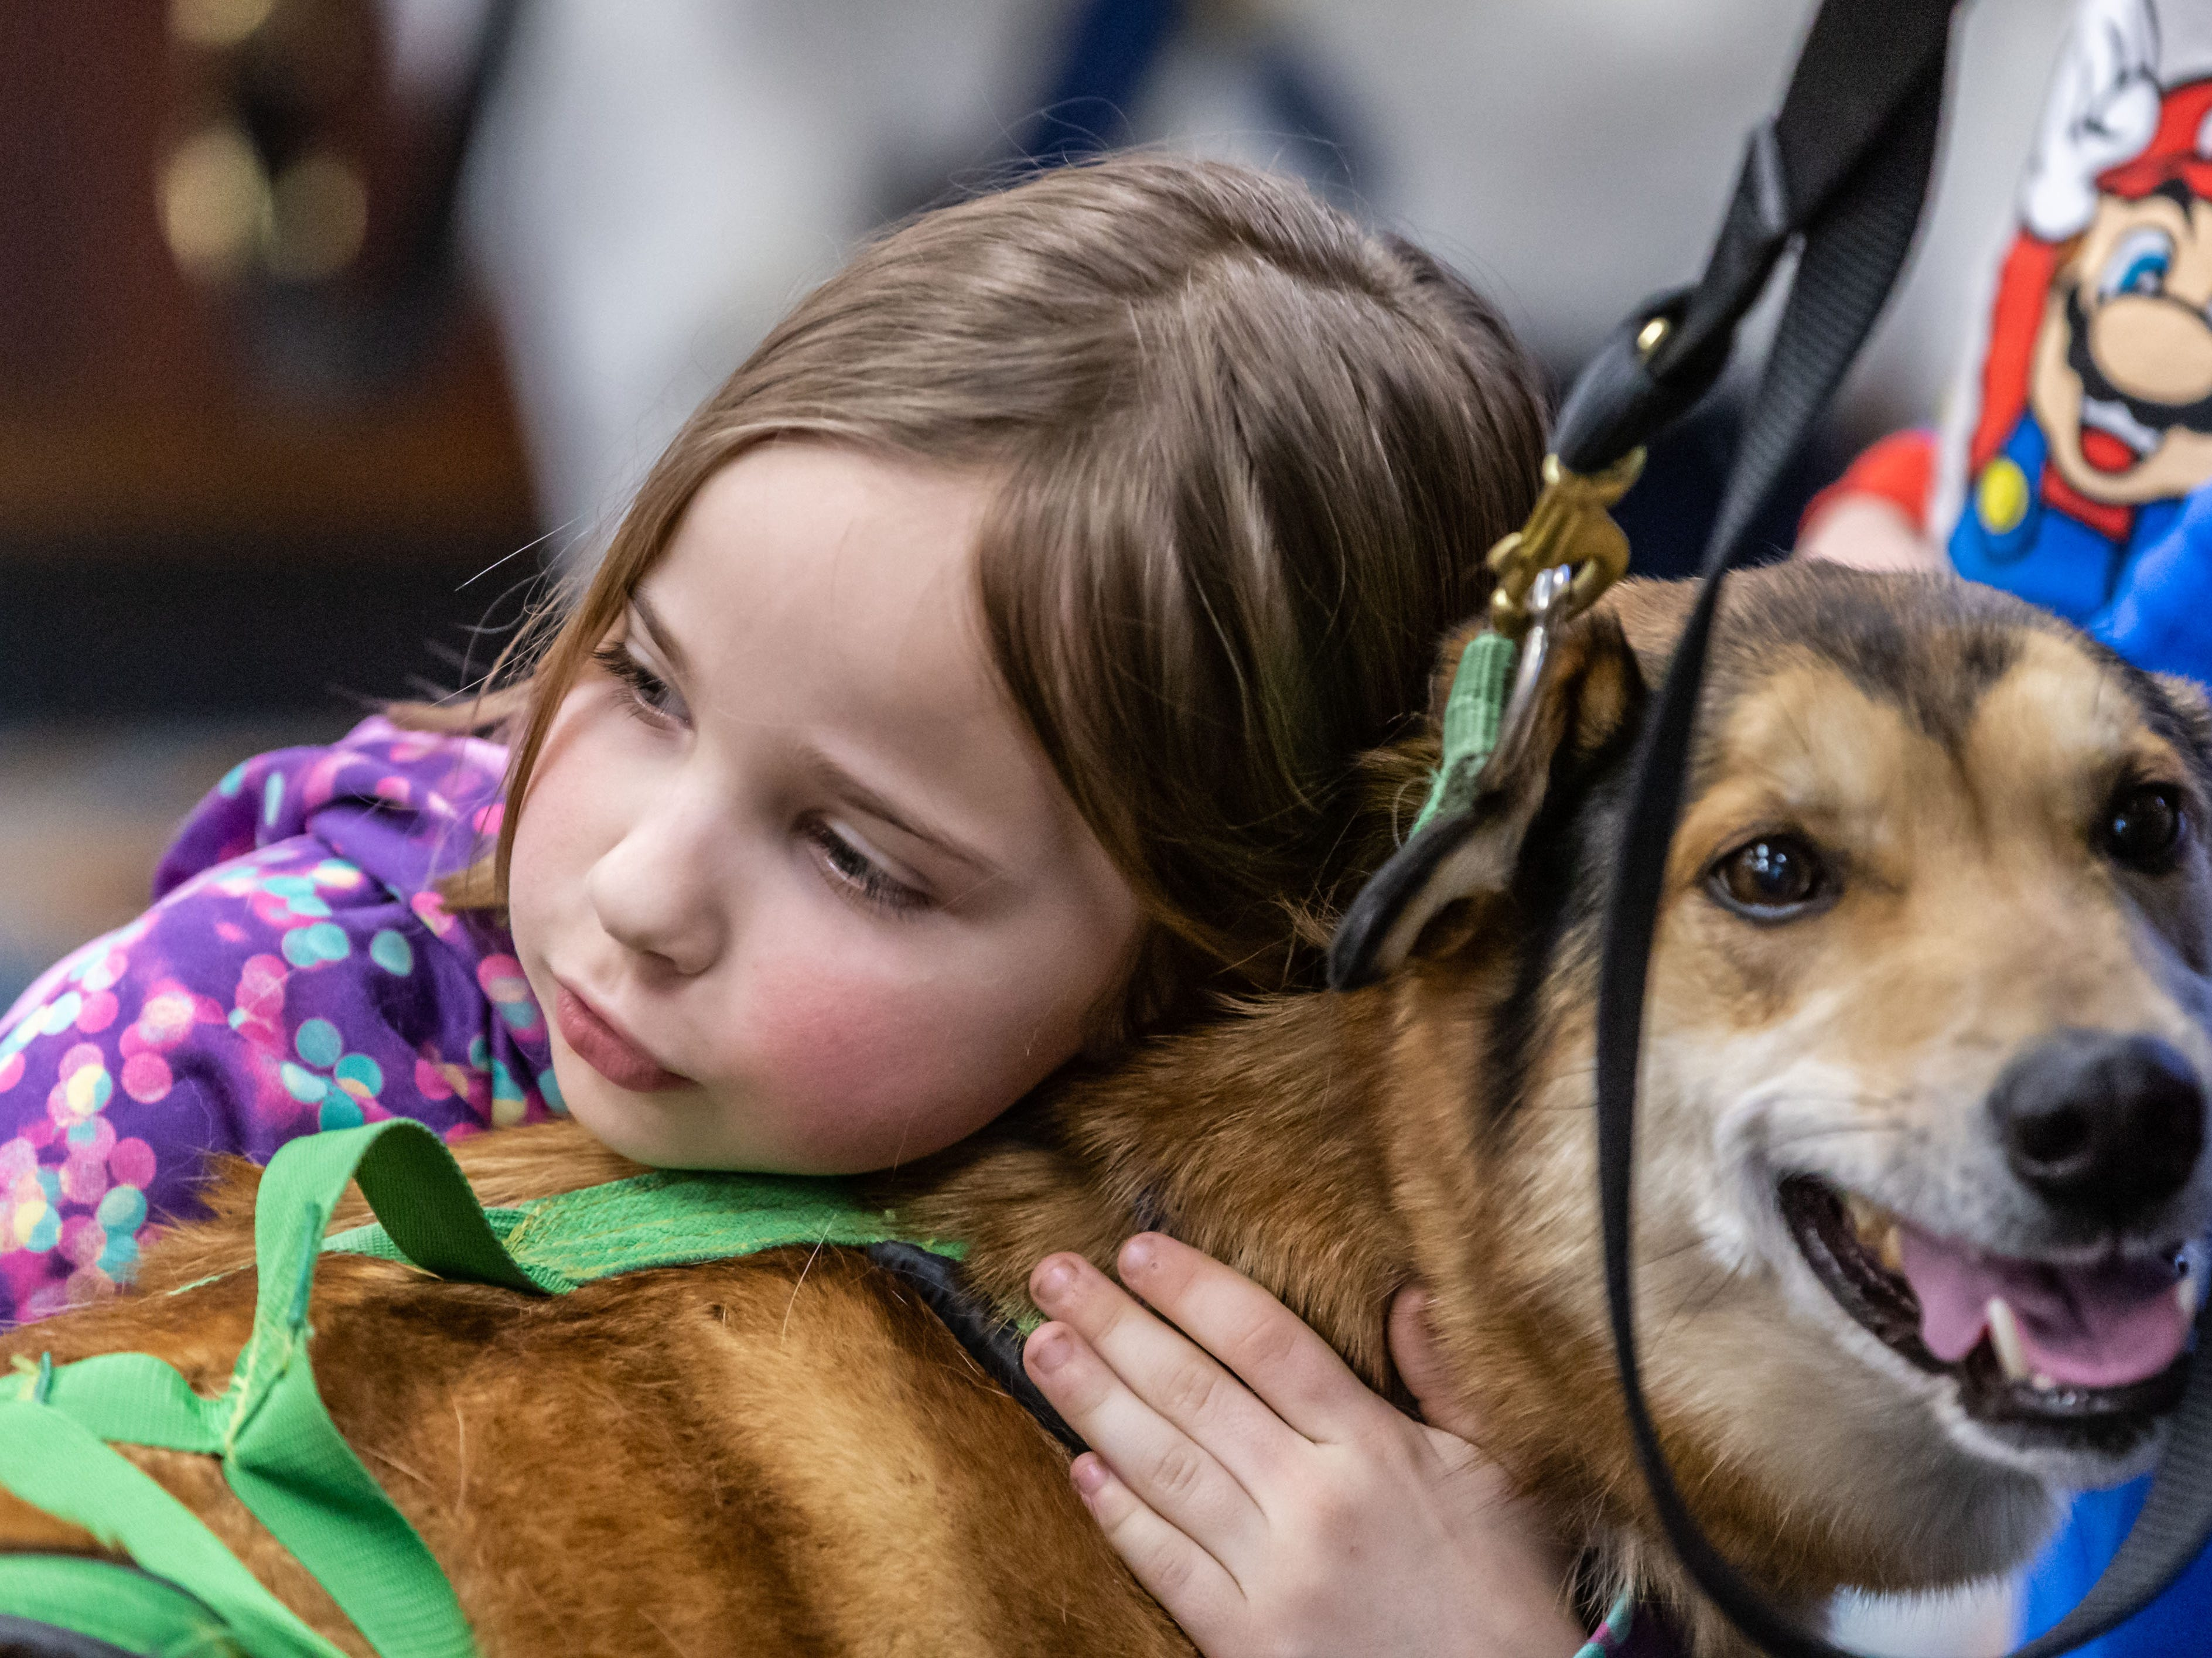 """Seven-year-old Leila Glorioso of Oconomowoc cuddles with one of the furry ambassadors from Door County Sled Dogs during an educational event at the Town Hall Library in North Lake on Monday, Feb. 25, 2019. The event is linked to the library's youth winter reading program """"Idita-Read""""."""